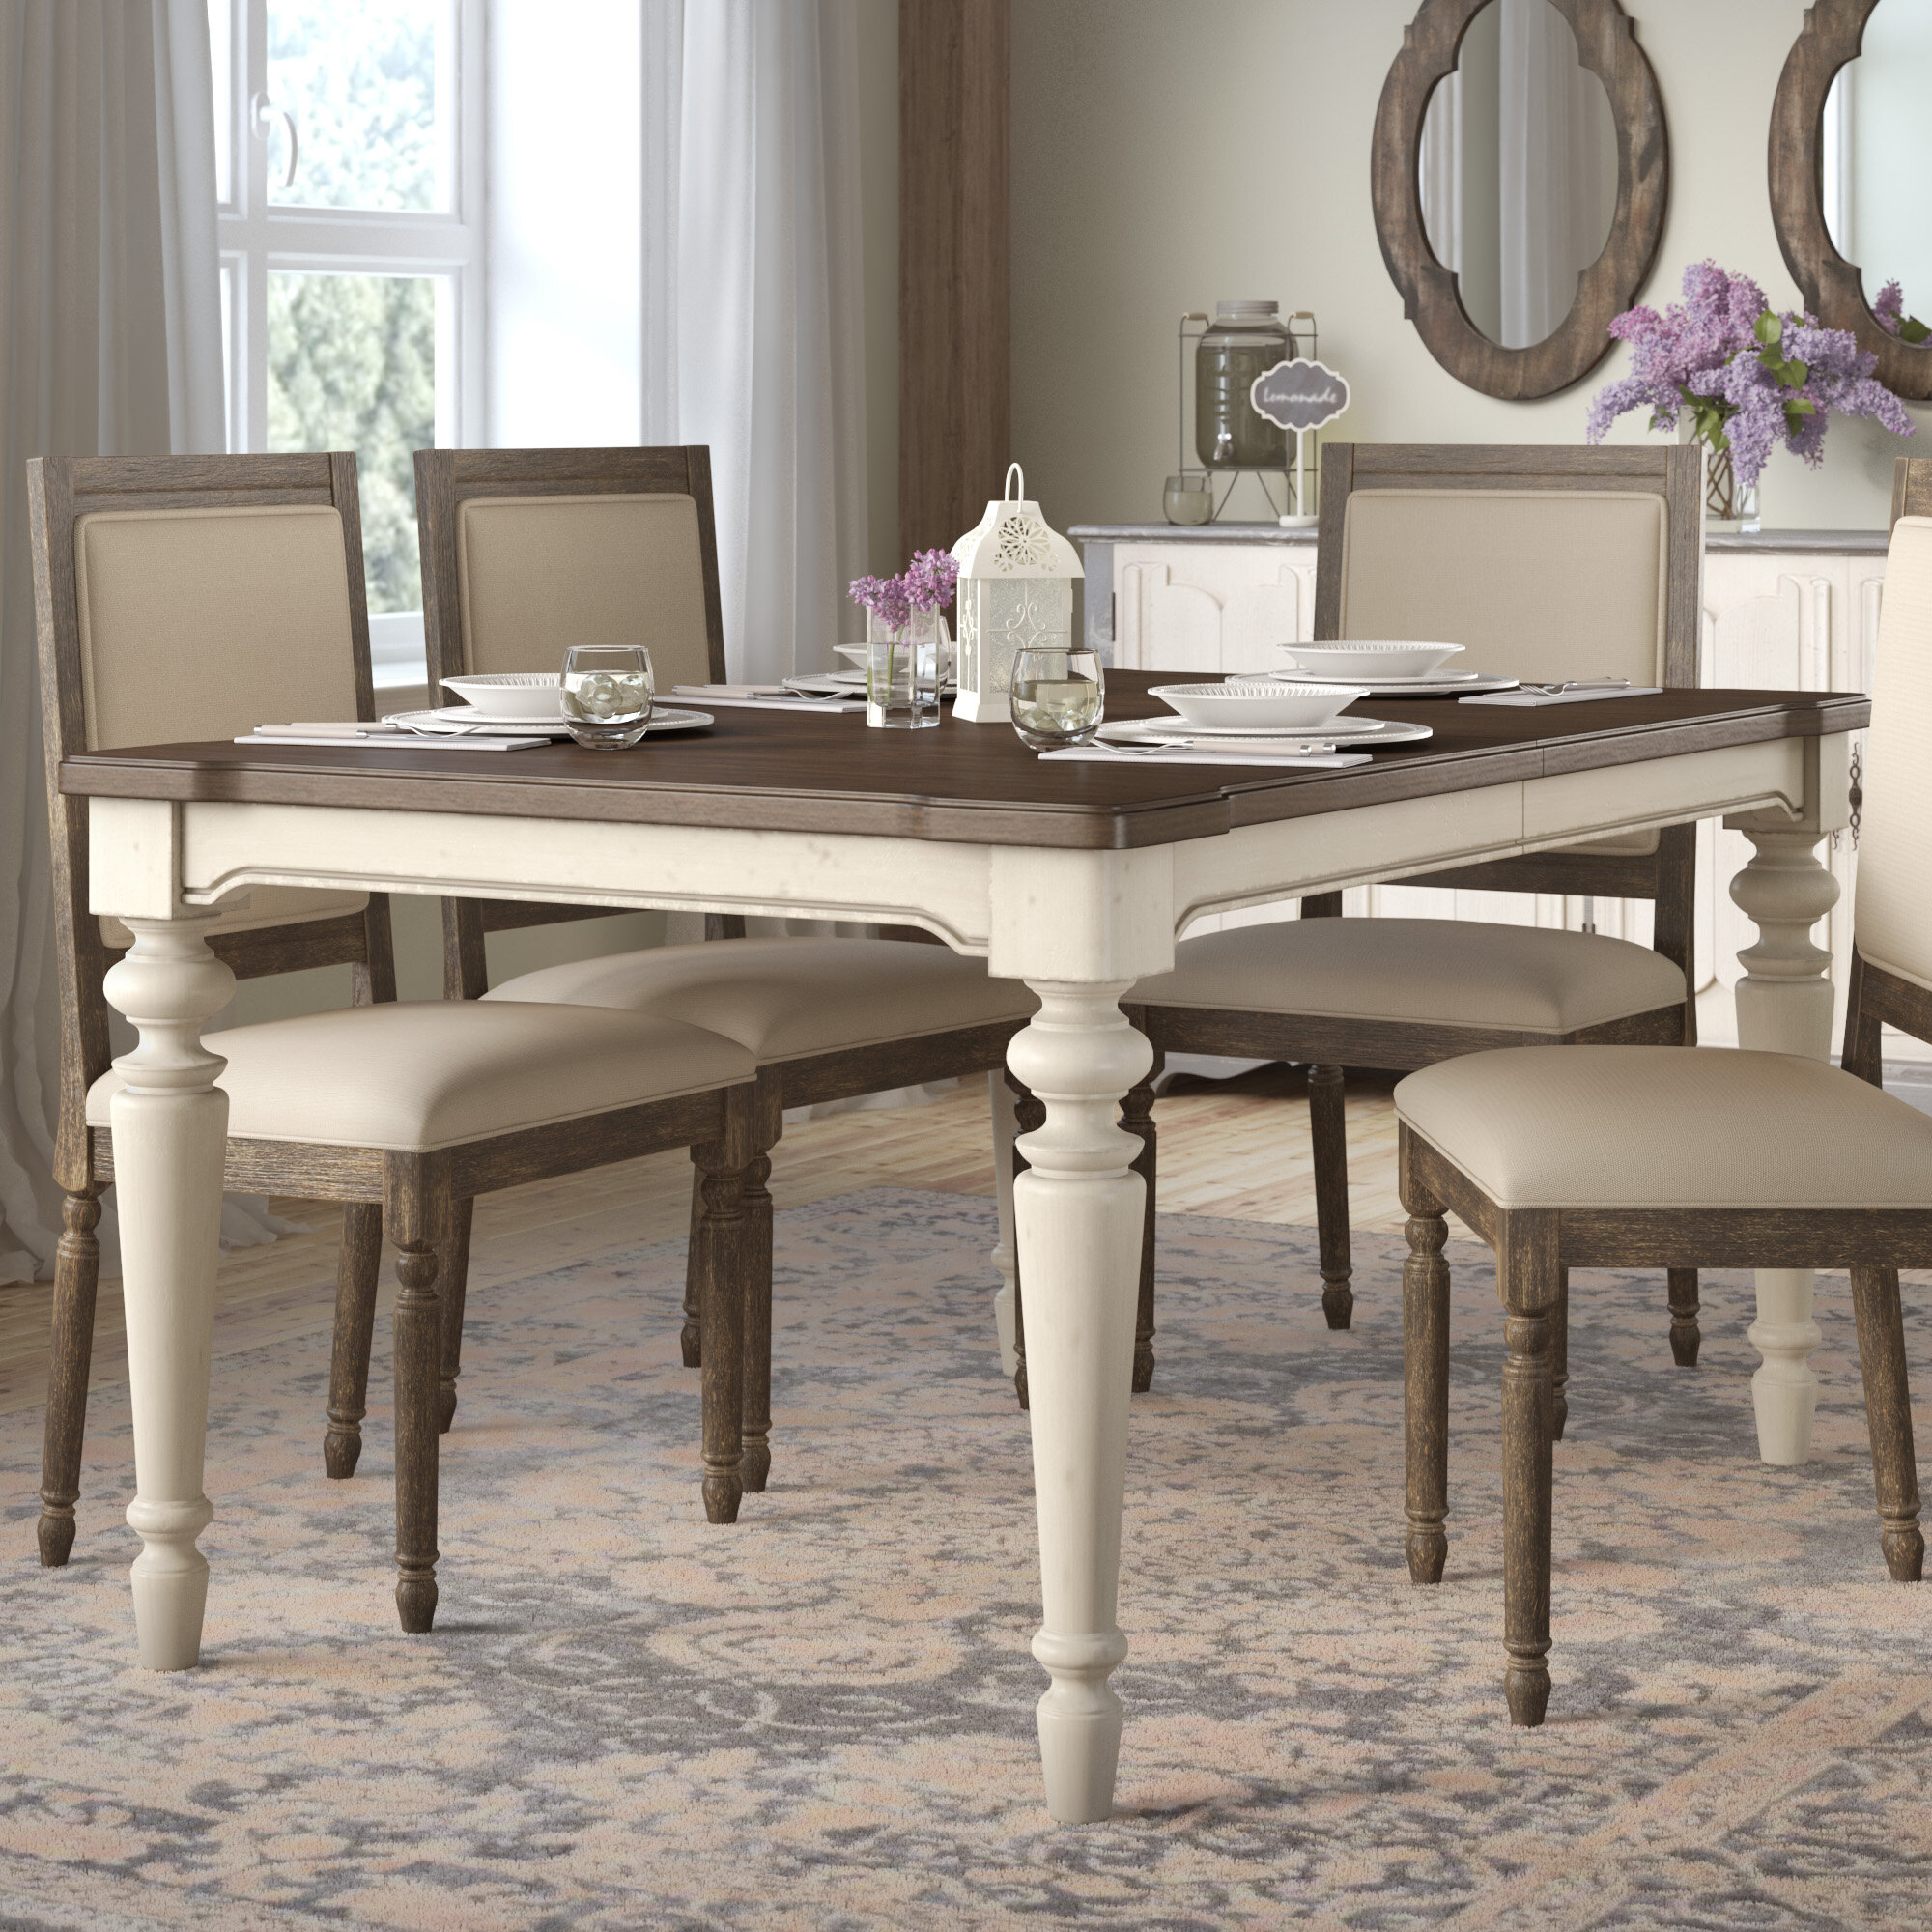 Ordinaire Ornithogale Extendable Dining Table